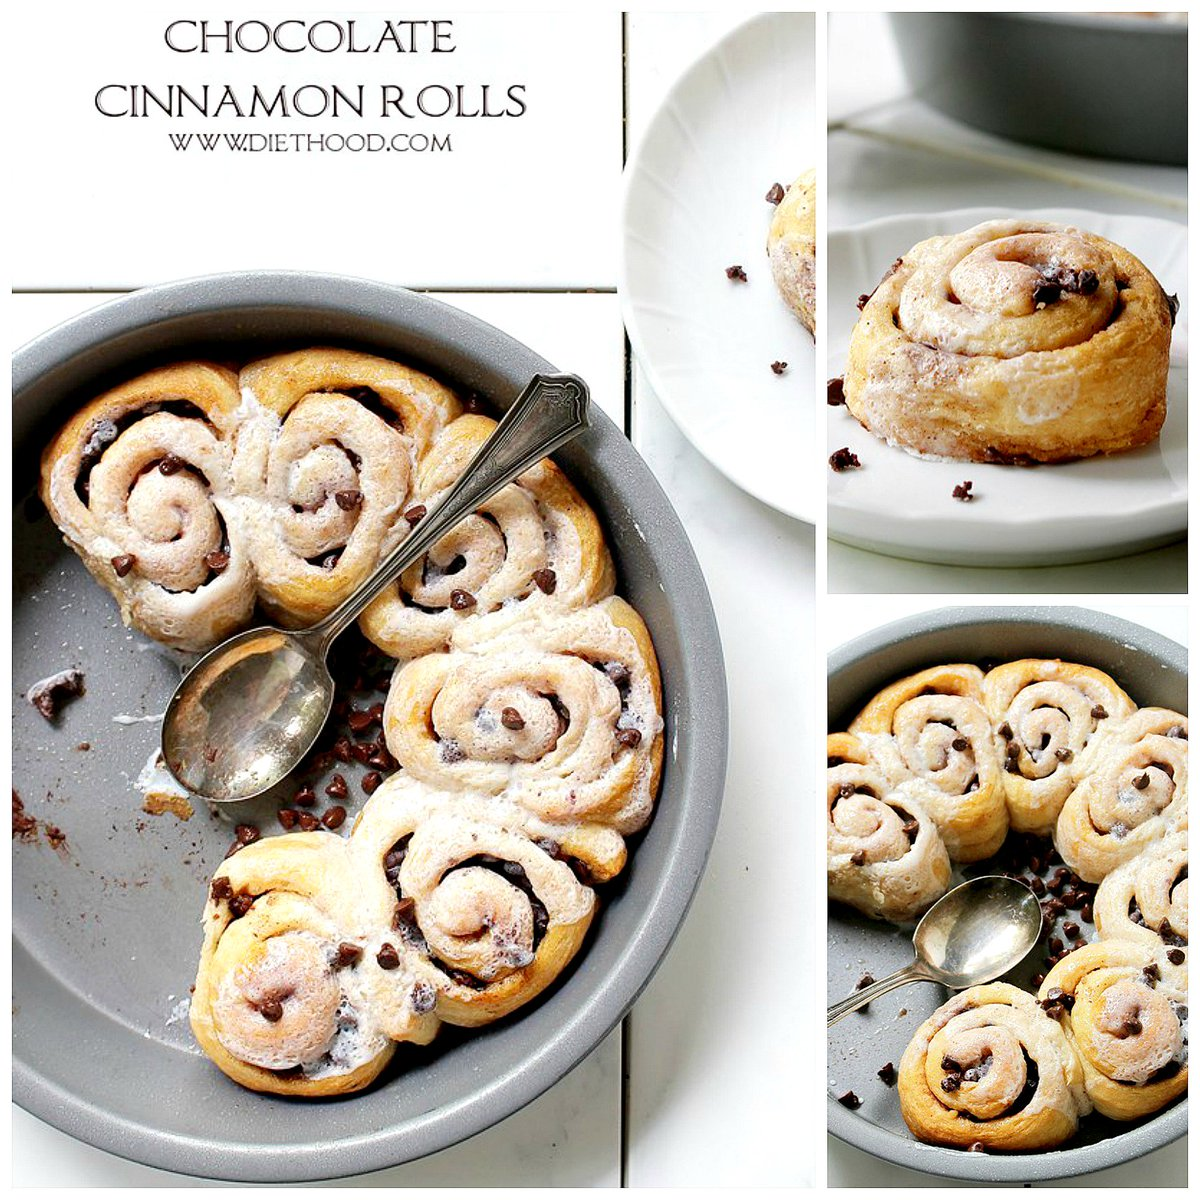 : CHOCOLATE CINNAMON ROLLS 😍